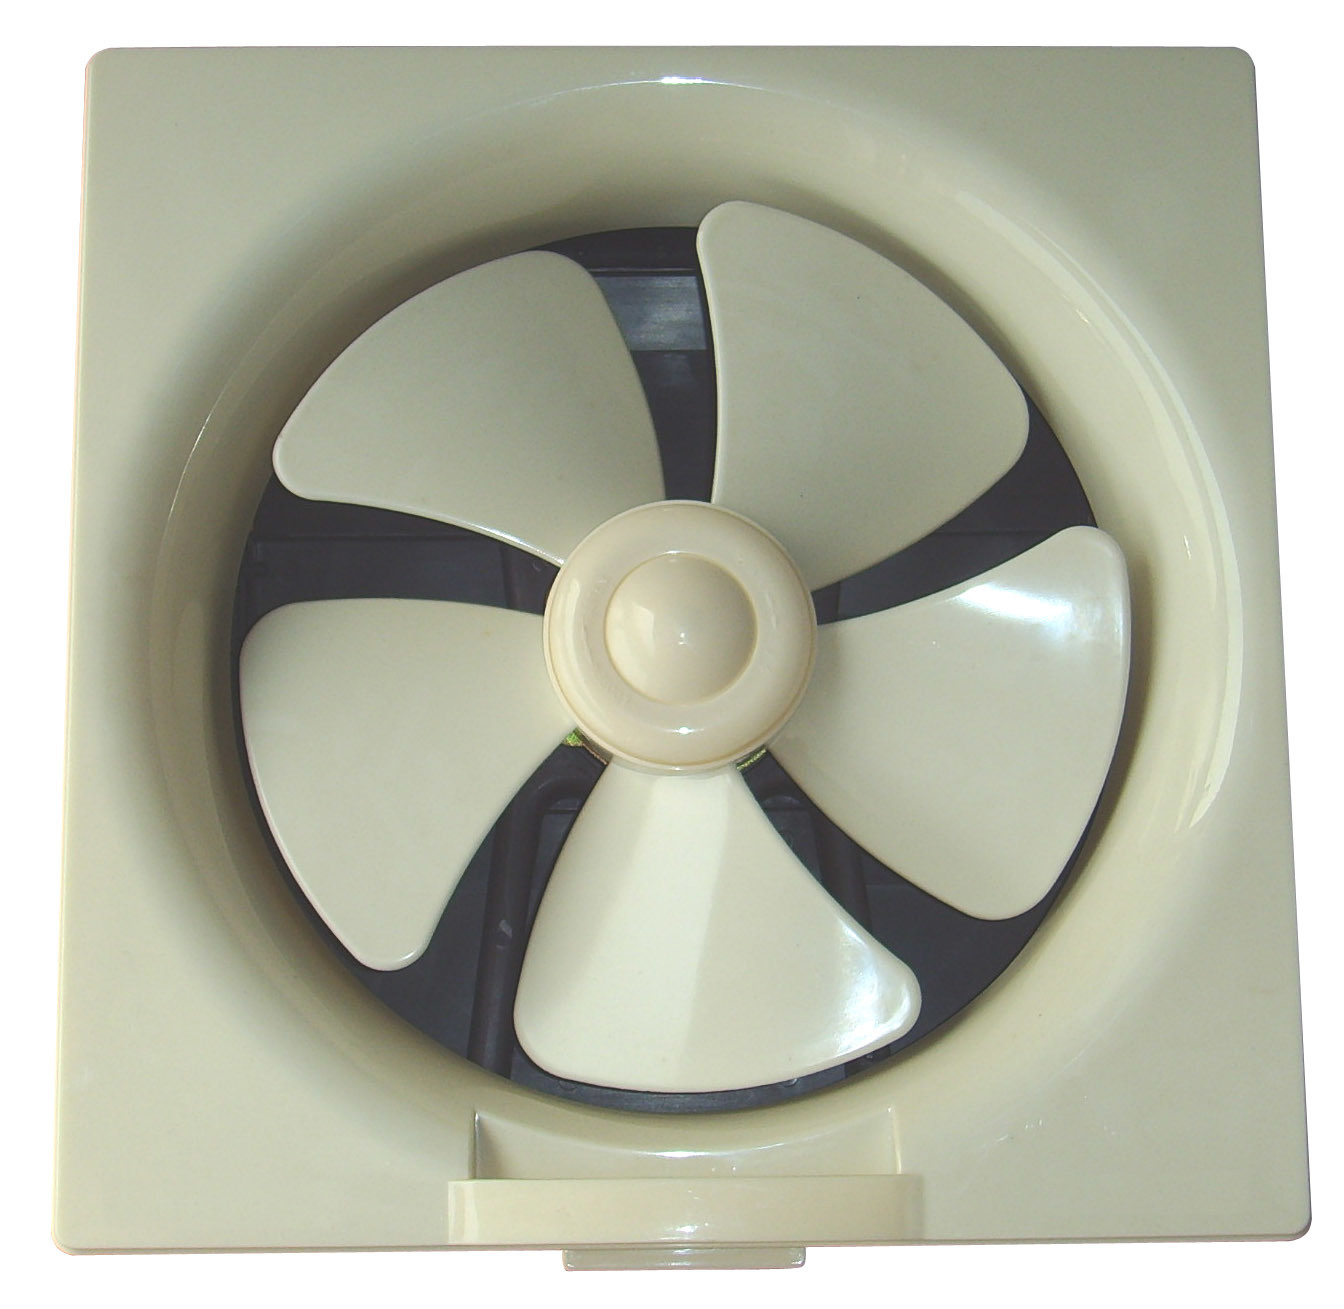 10 Full Plastic Shutter Exhaust/Ventilation Fan (Item No.: APH25 25B) #717952